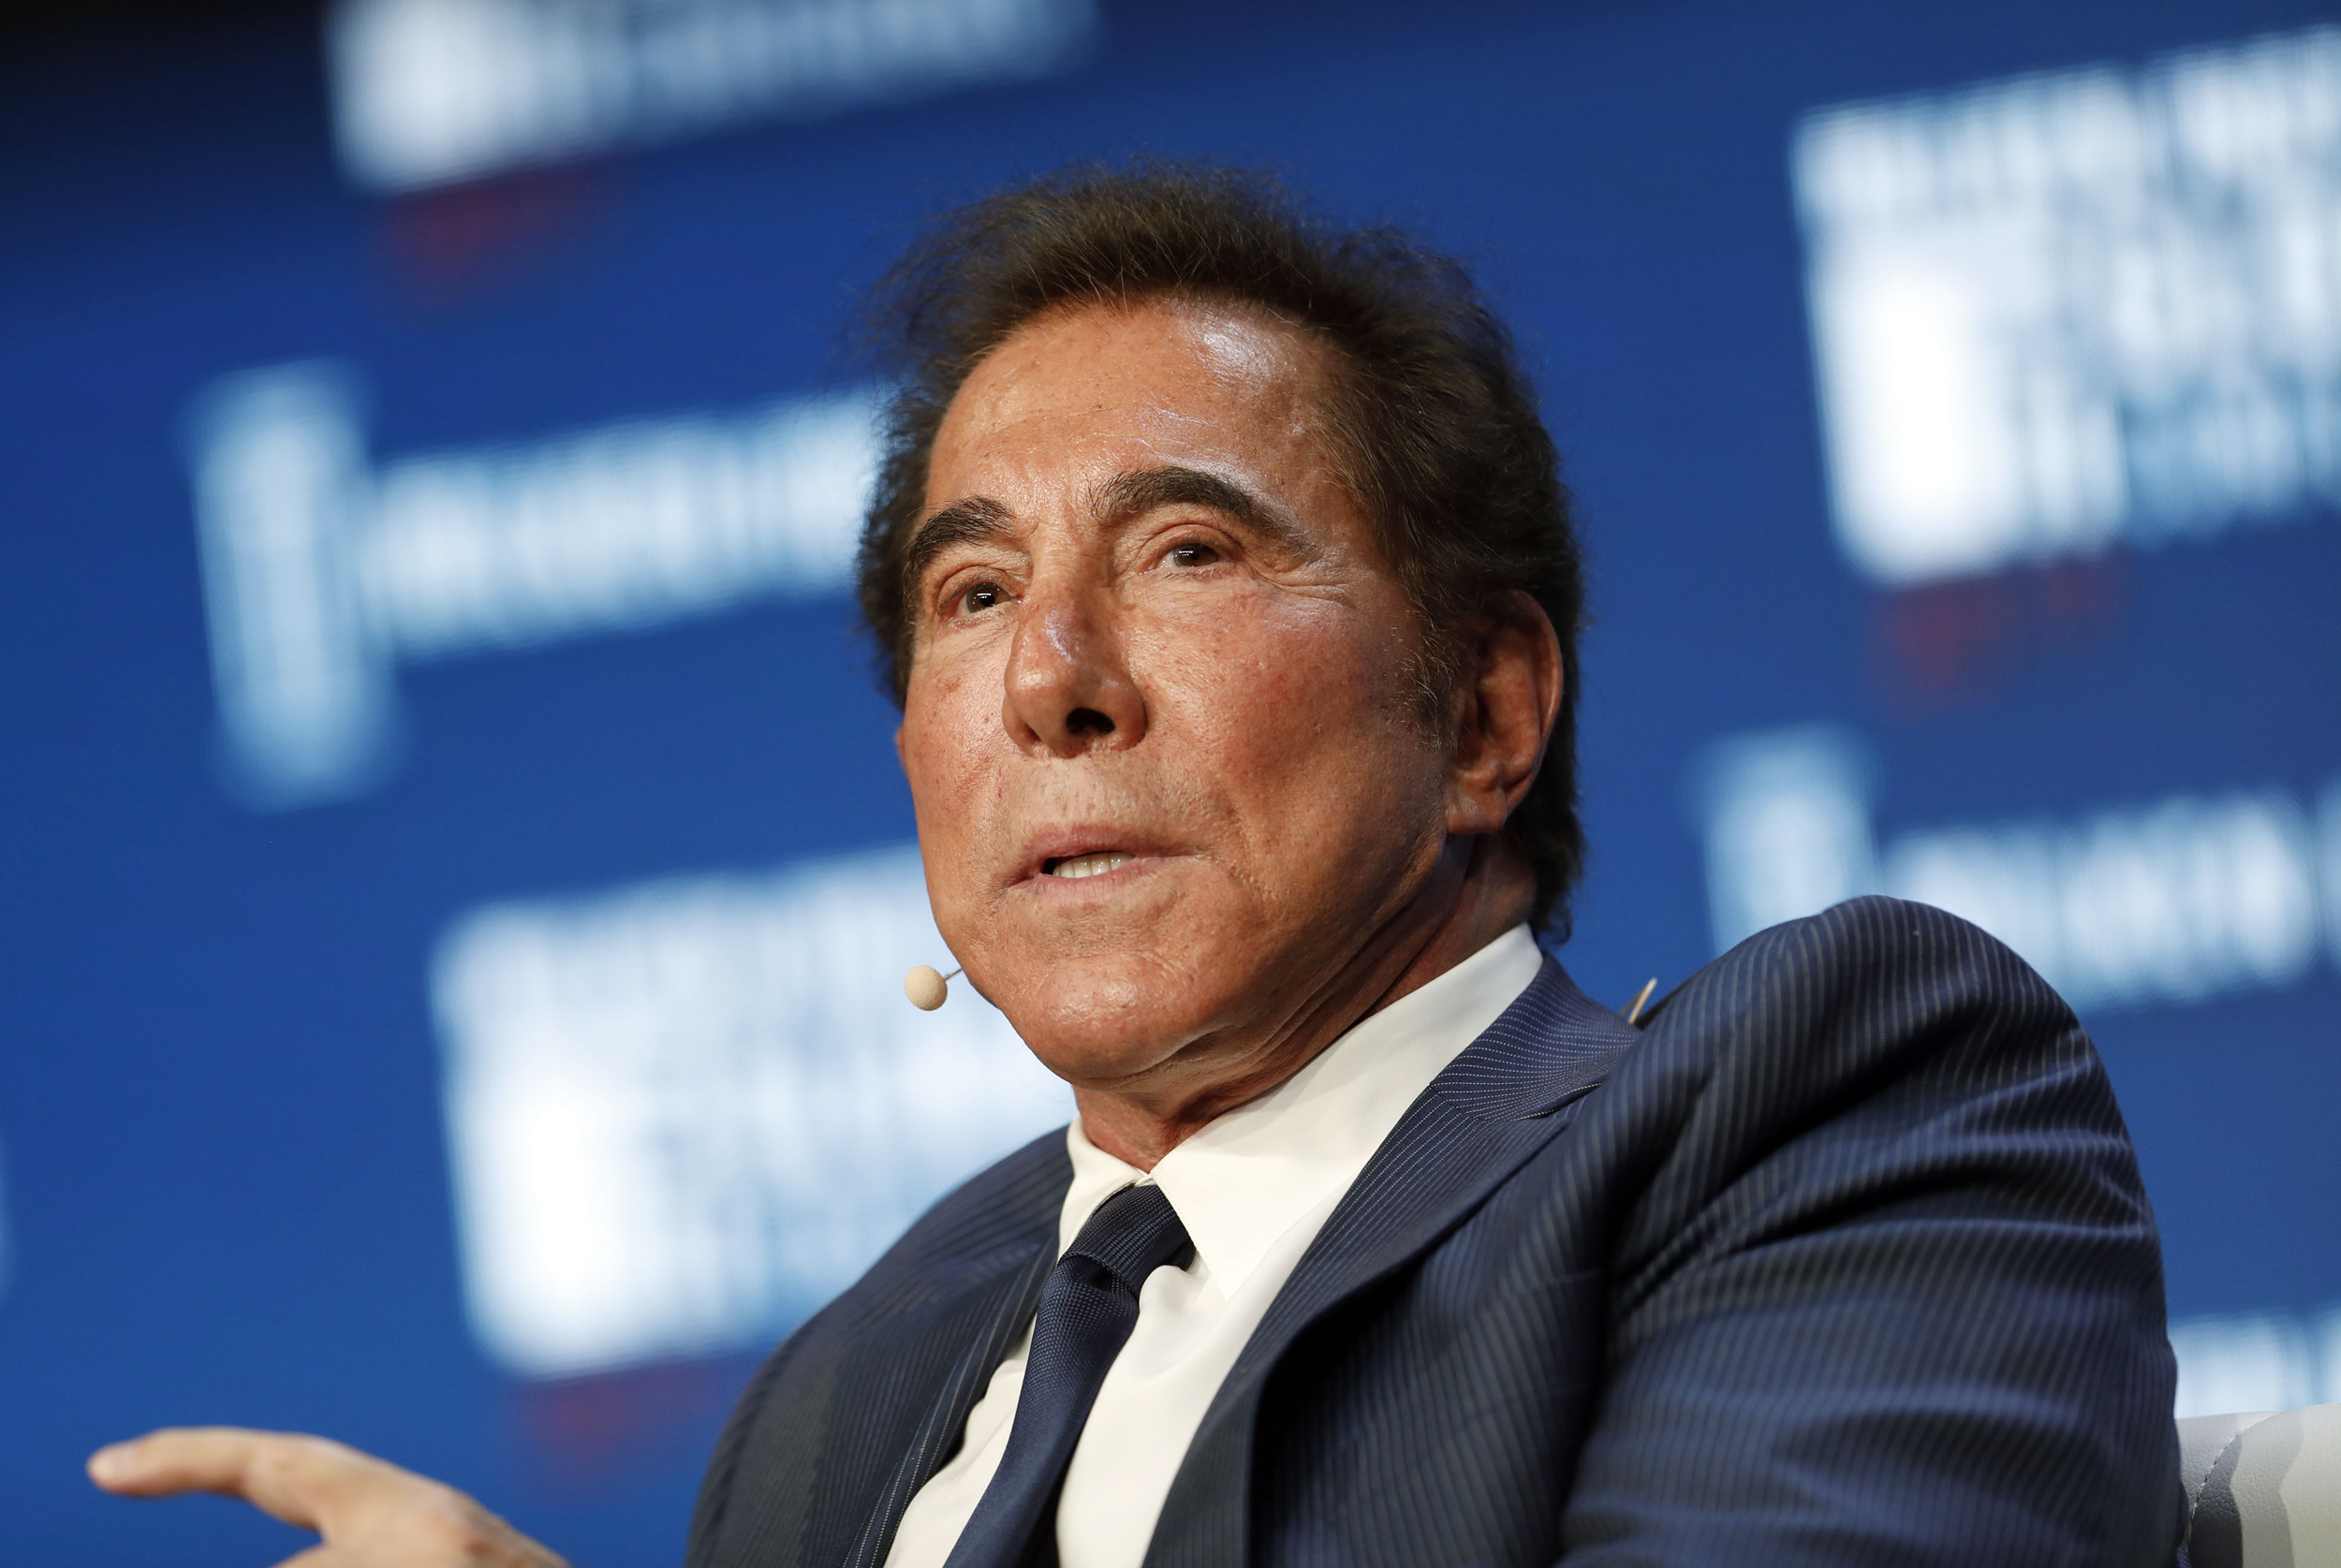 Vegas king Steve Wynn accused of 'pattern of sexual misconduct' in WSJ report